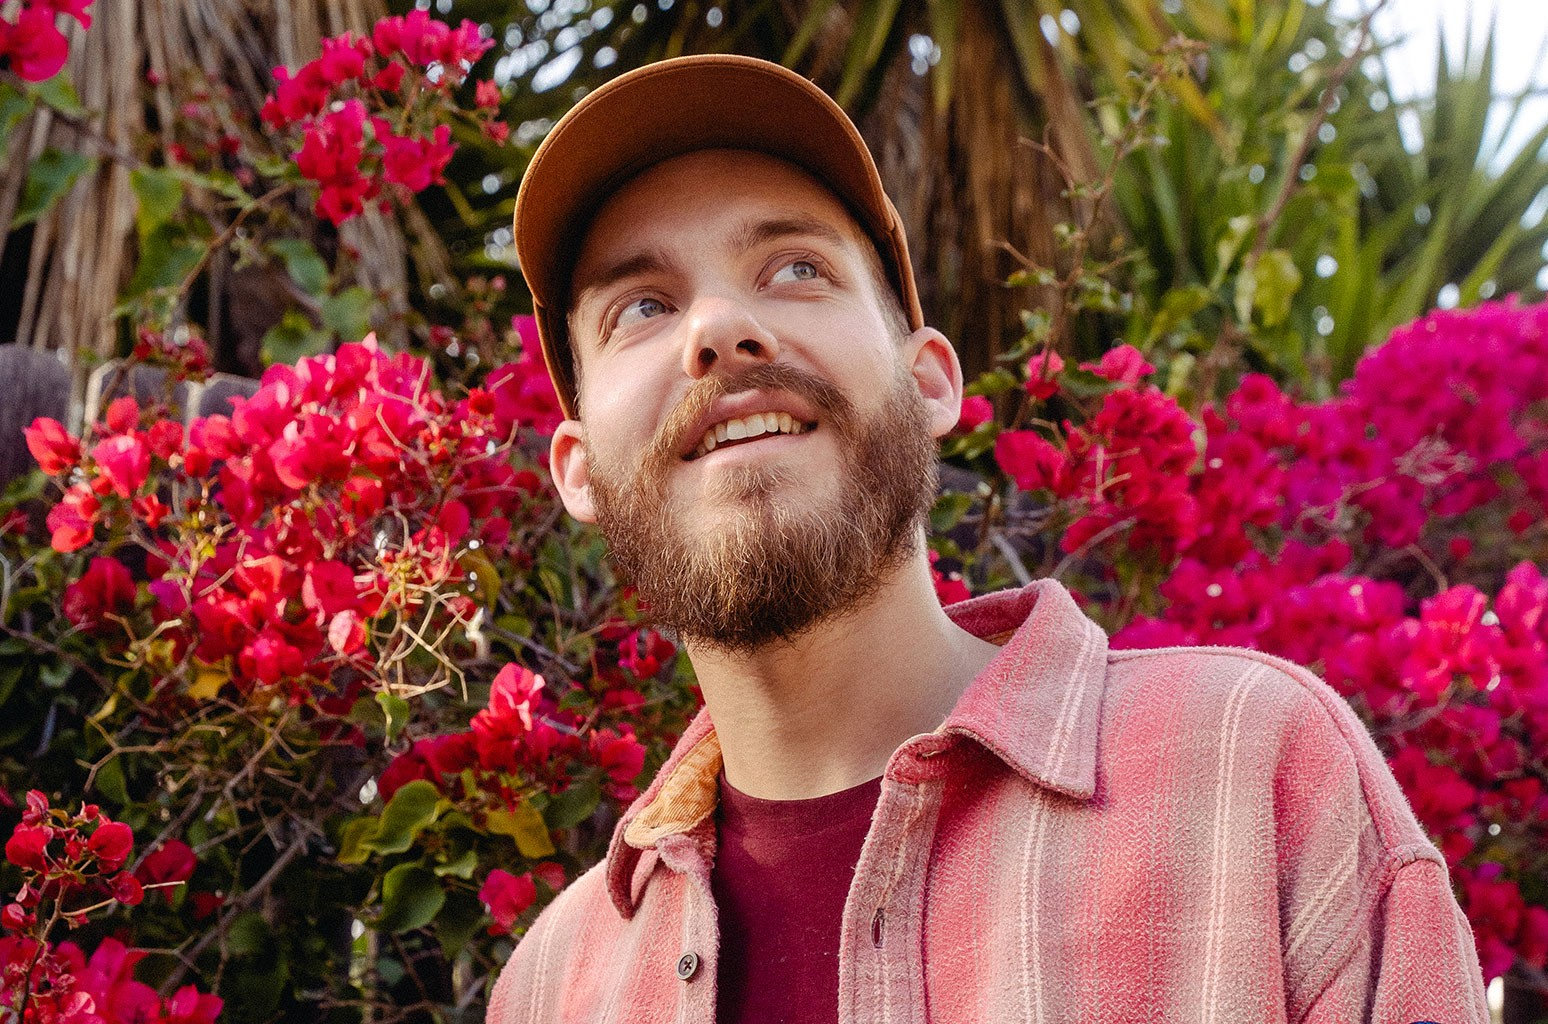 First Spin: The Week's Best New Dance Tracks From San Holo, SG Lewis & Nile Rodgers, Black Coffee & More